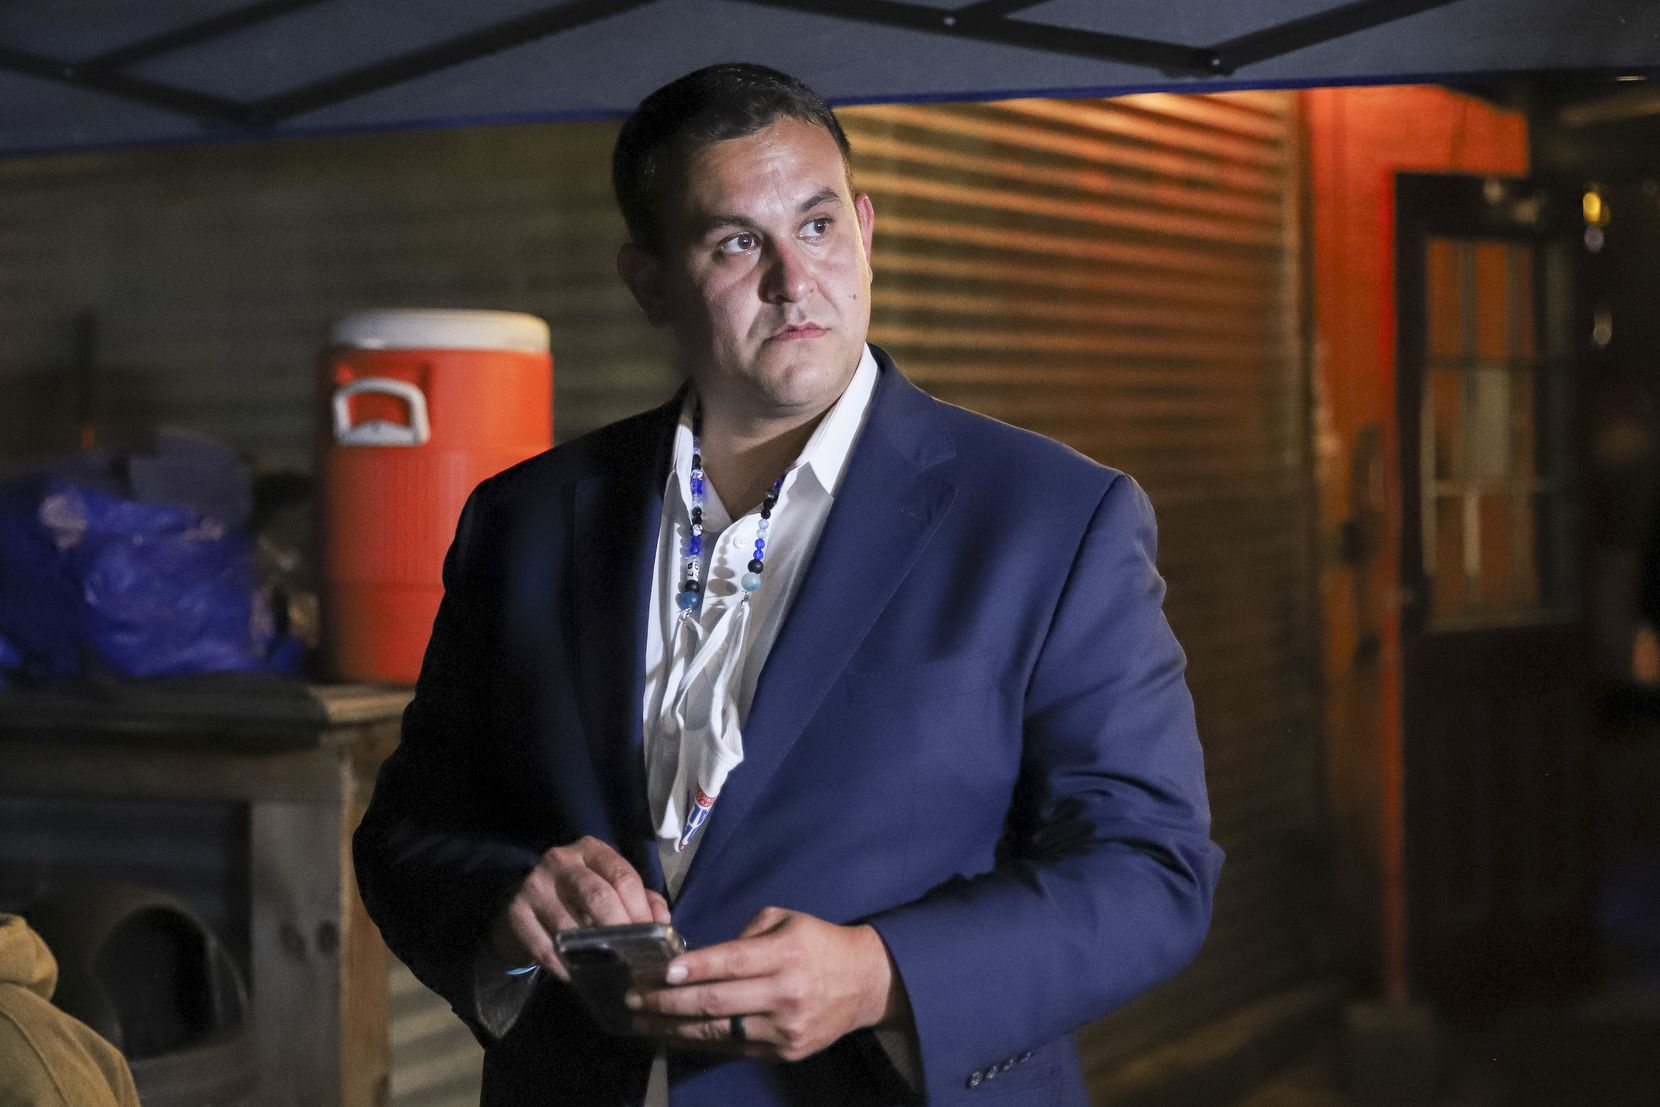 Adam Bazaldua, Dallas City Council District 7 candidate, awaits results during an election night watch party at Eight Bells Alehouse Dallas, Saturday, May 1, 2021. (Elias Valverde II / Special Contributor)